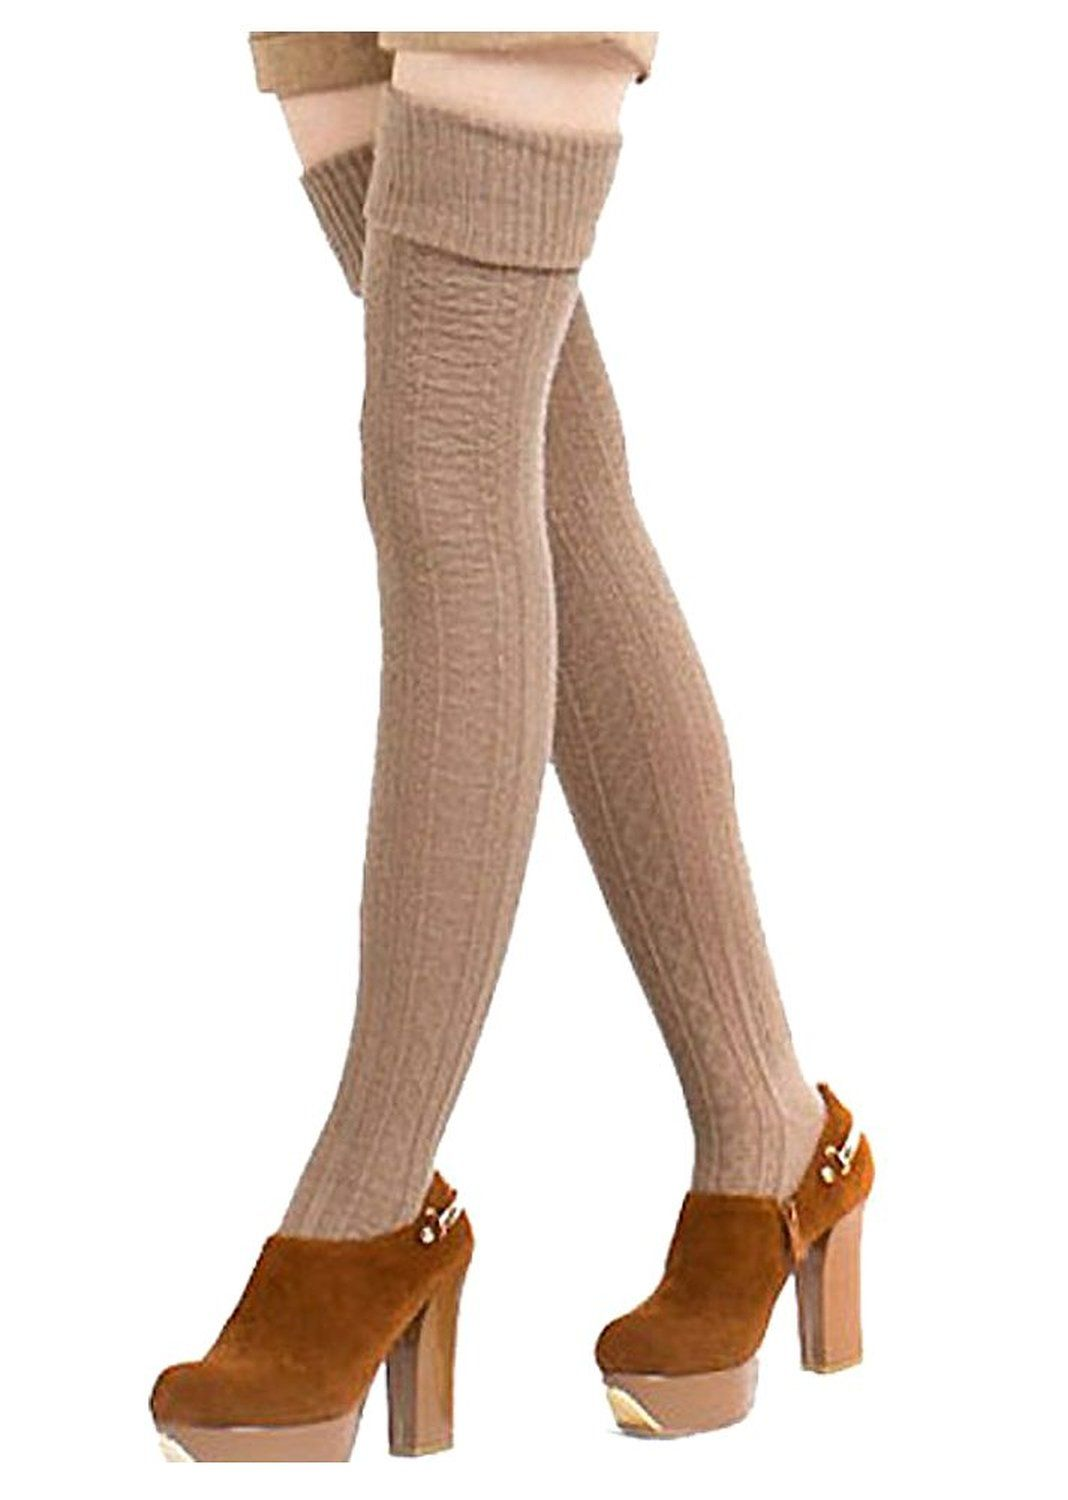 22cc87d5af7ce Mordenmiss Women's Knit High Thigh Booties Stockings >>> CONTINUE  @ http